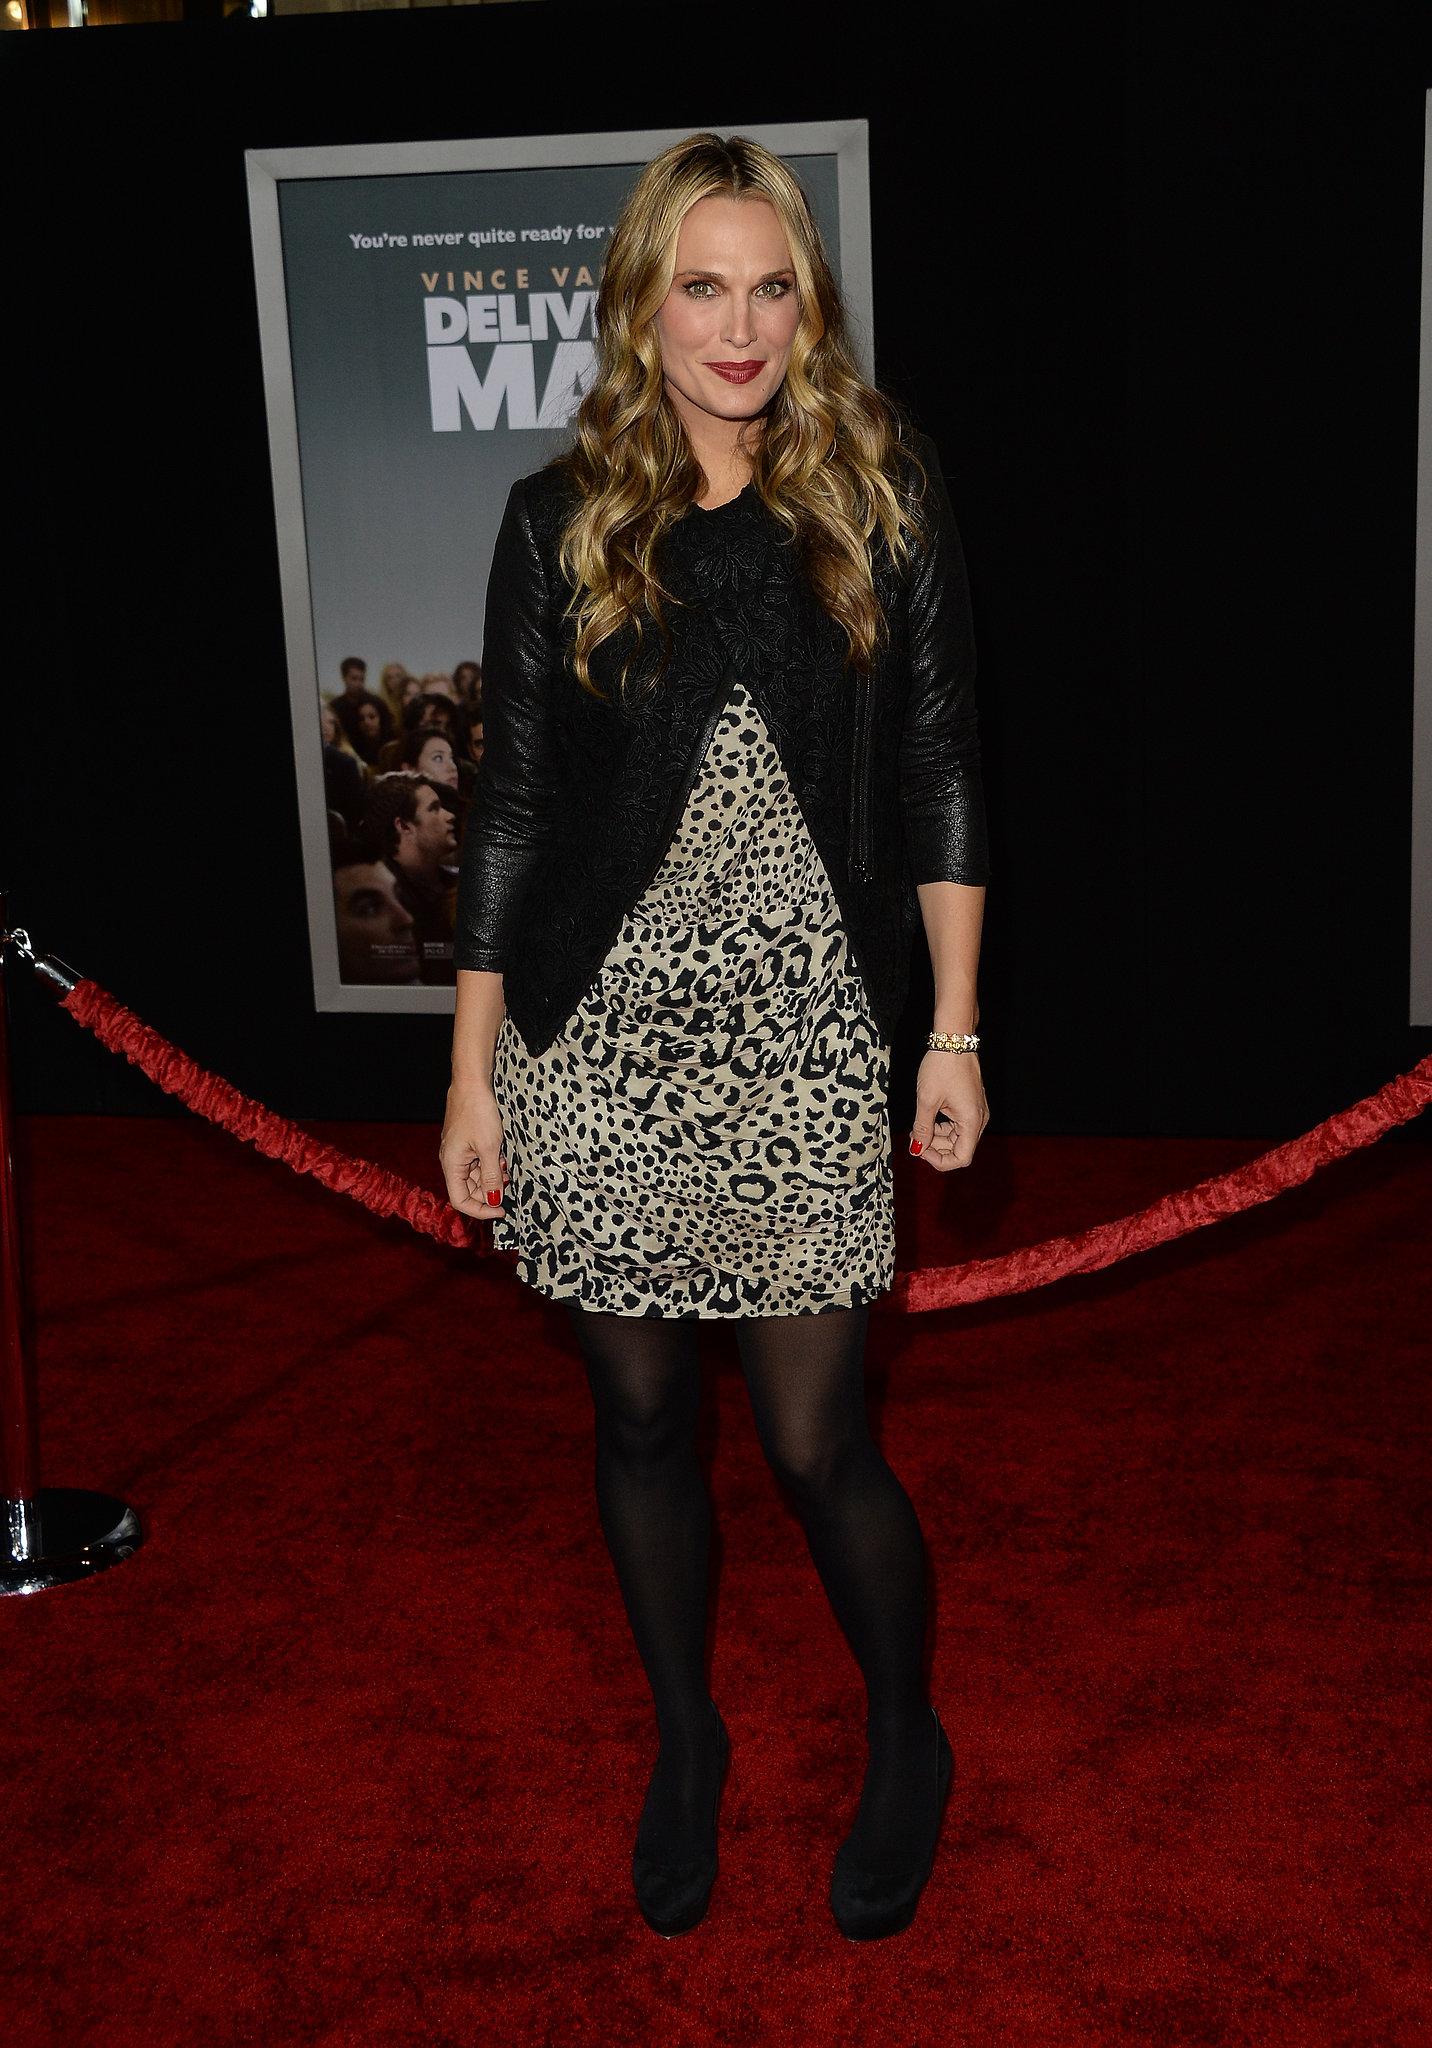 Molly Sims walked the red carpet for Delivery Man in a leopard-print dress and black accents.